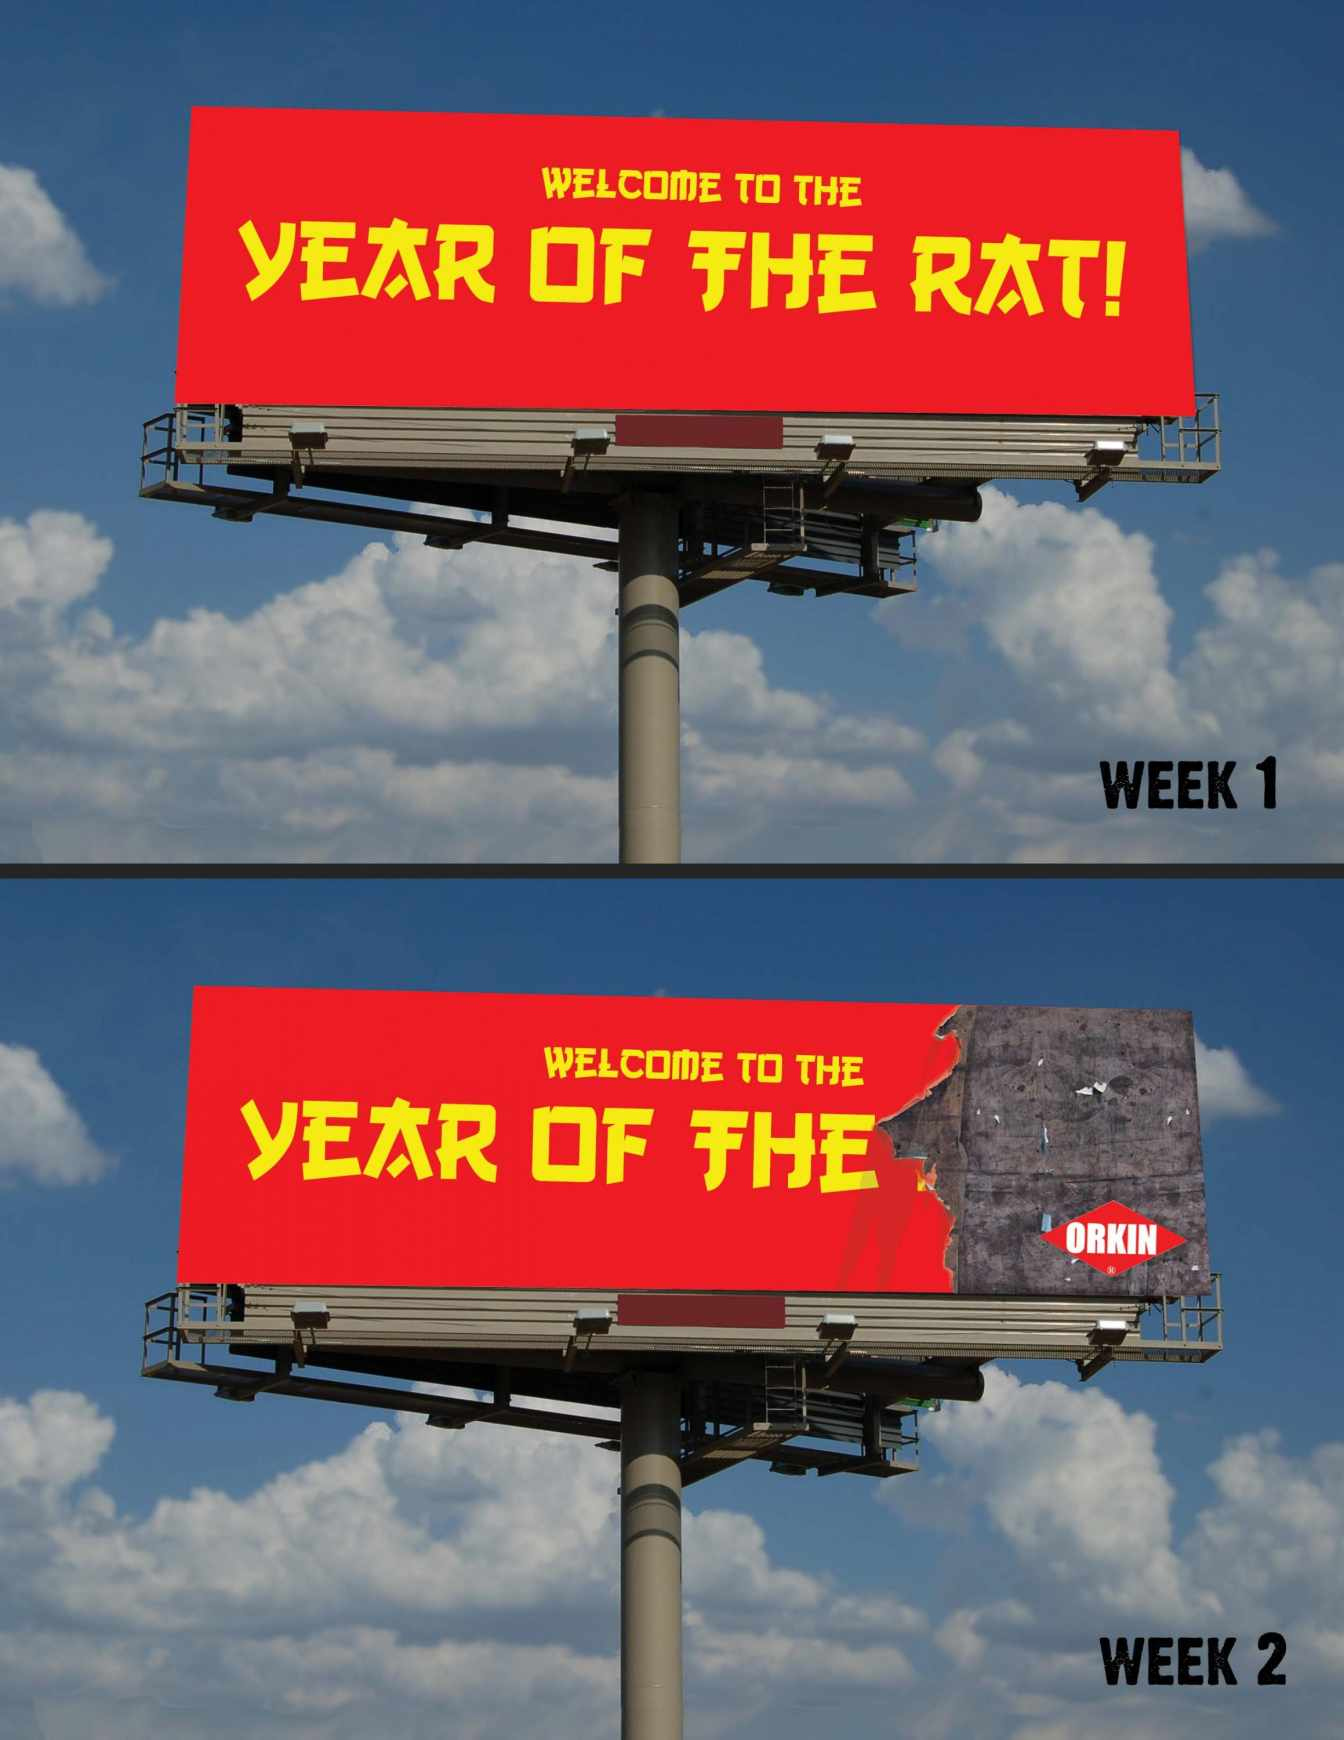 Orkin Billboard